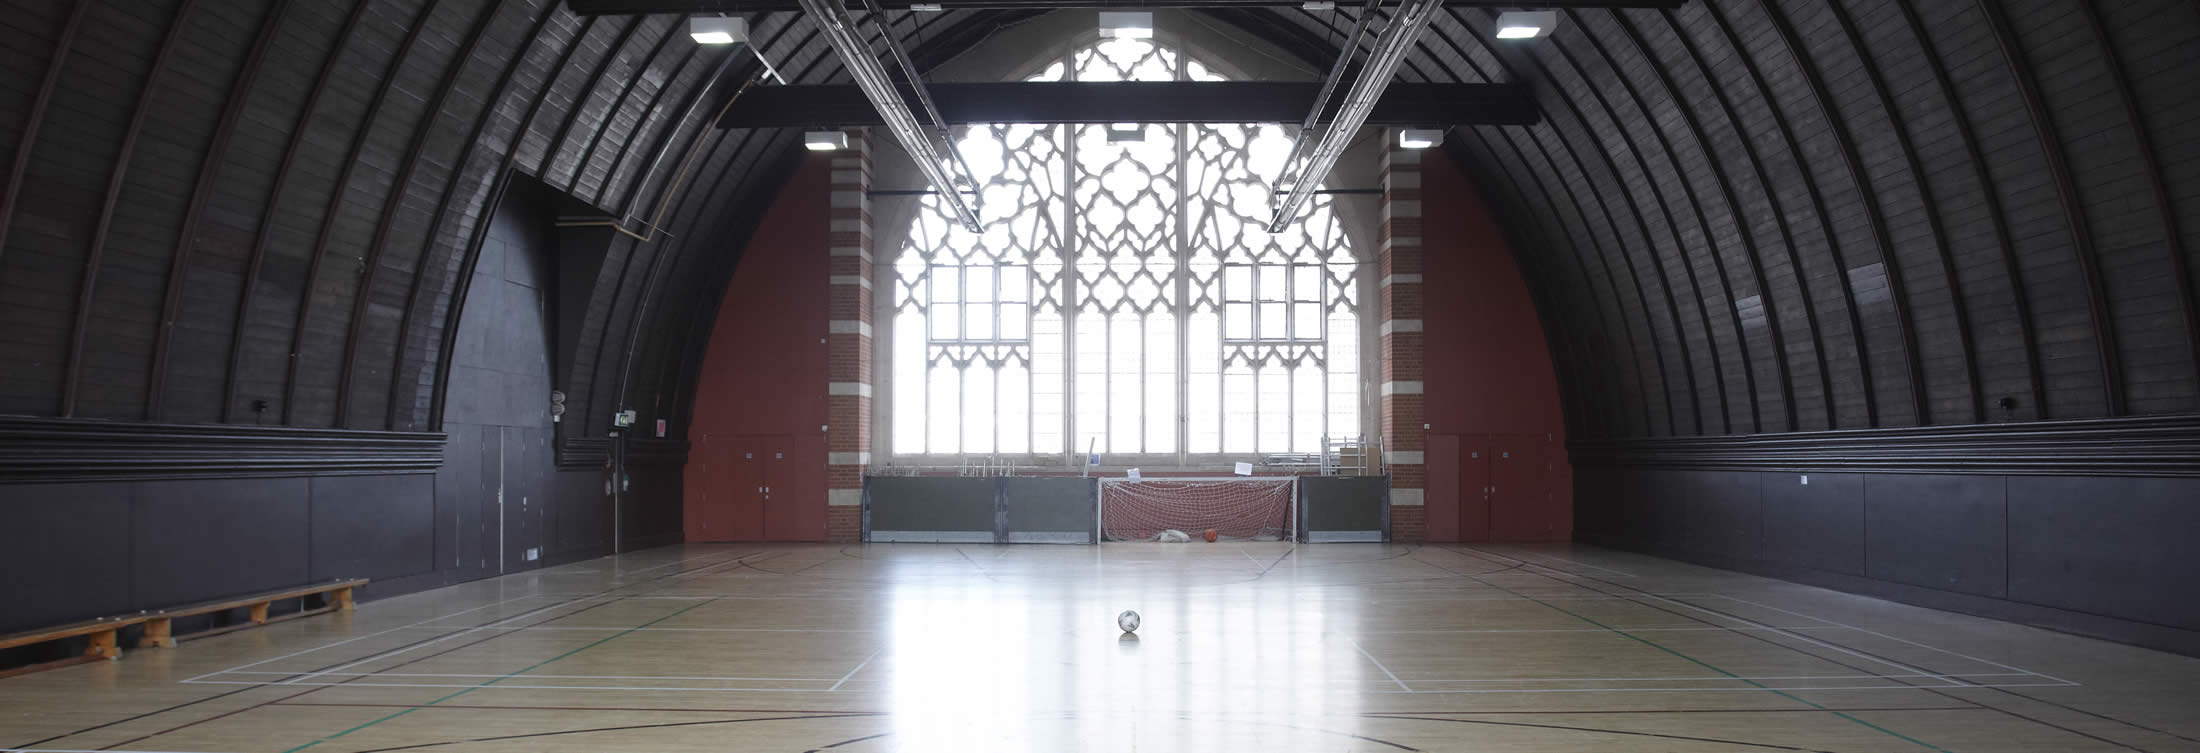 The Harrow Club - Sports Hall - Community indoor sports space